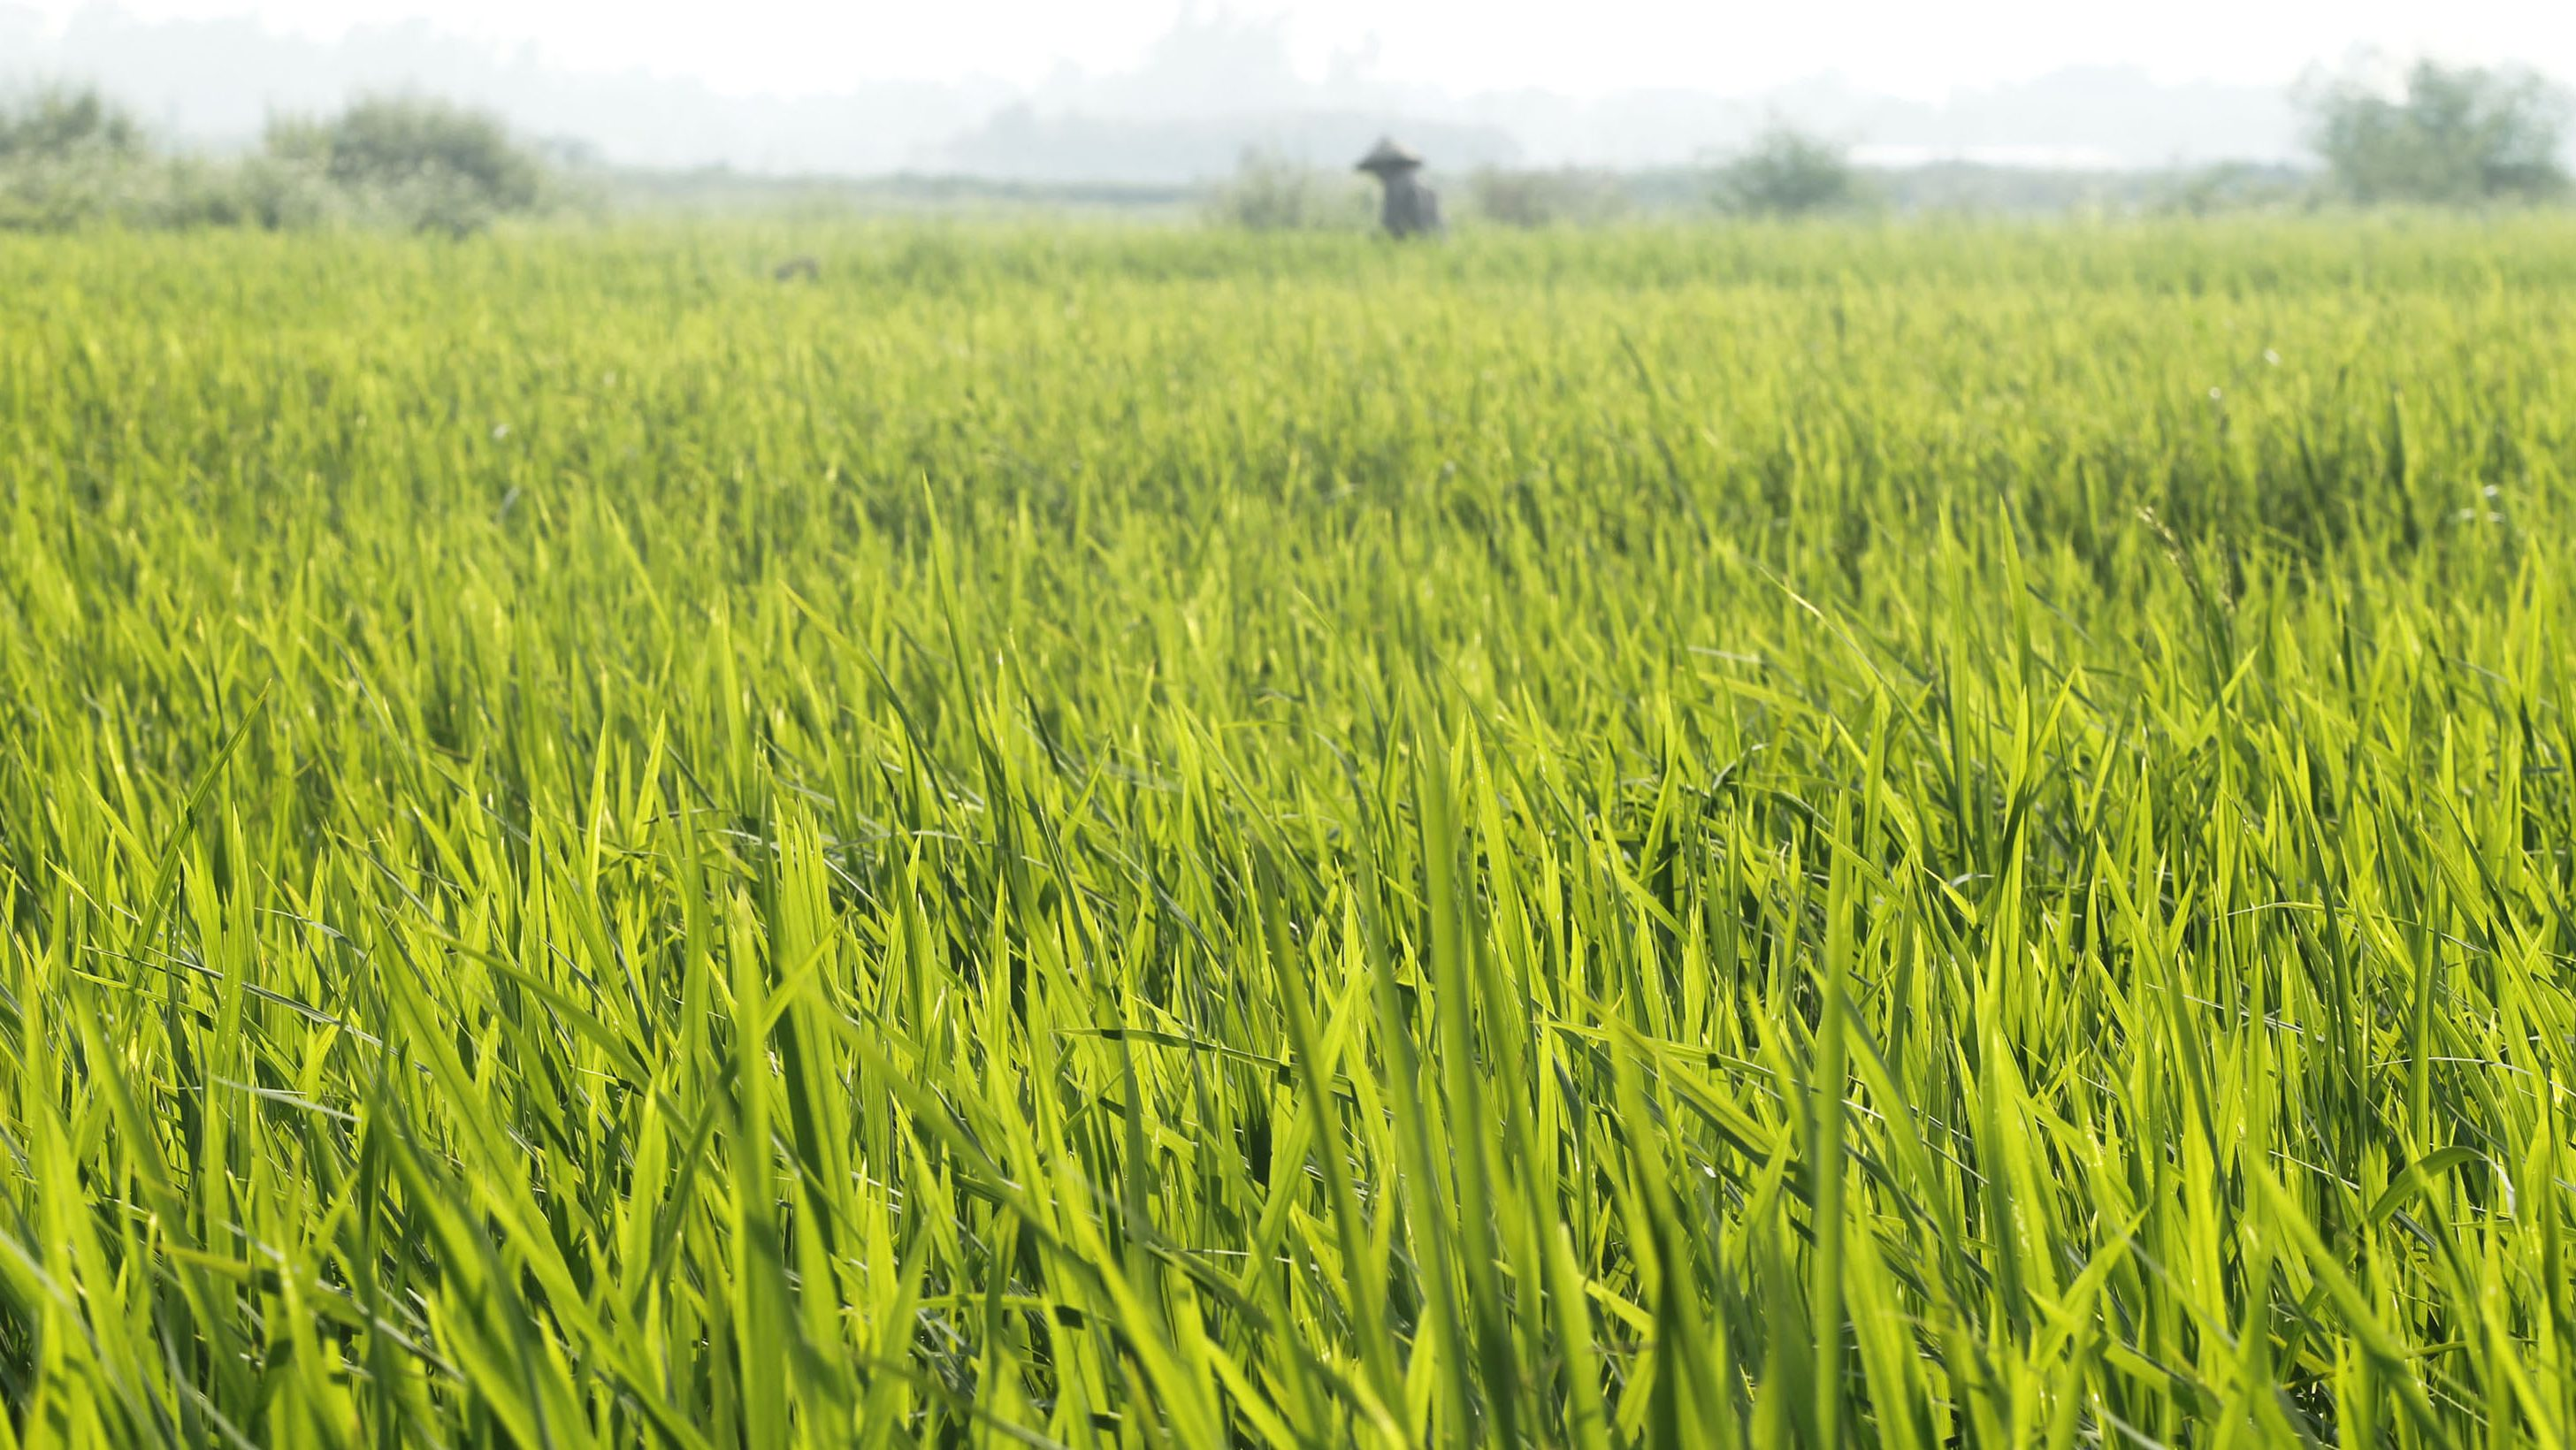 A farmer works on a rice paddy field outside Hanoi September 28, 2011.